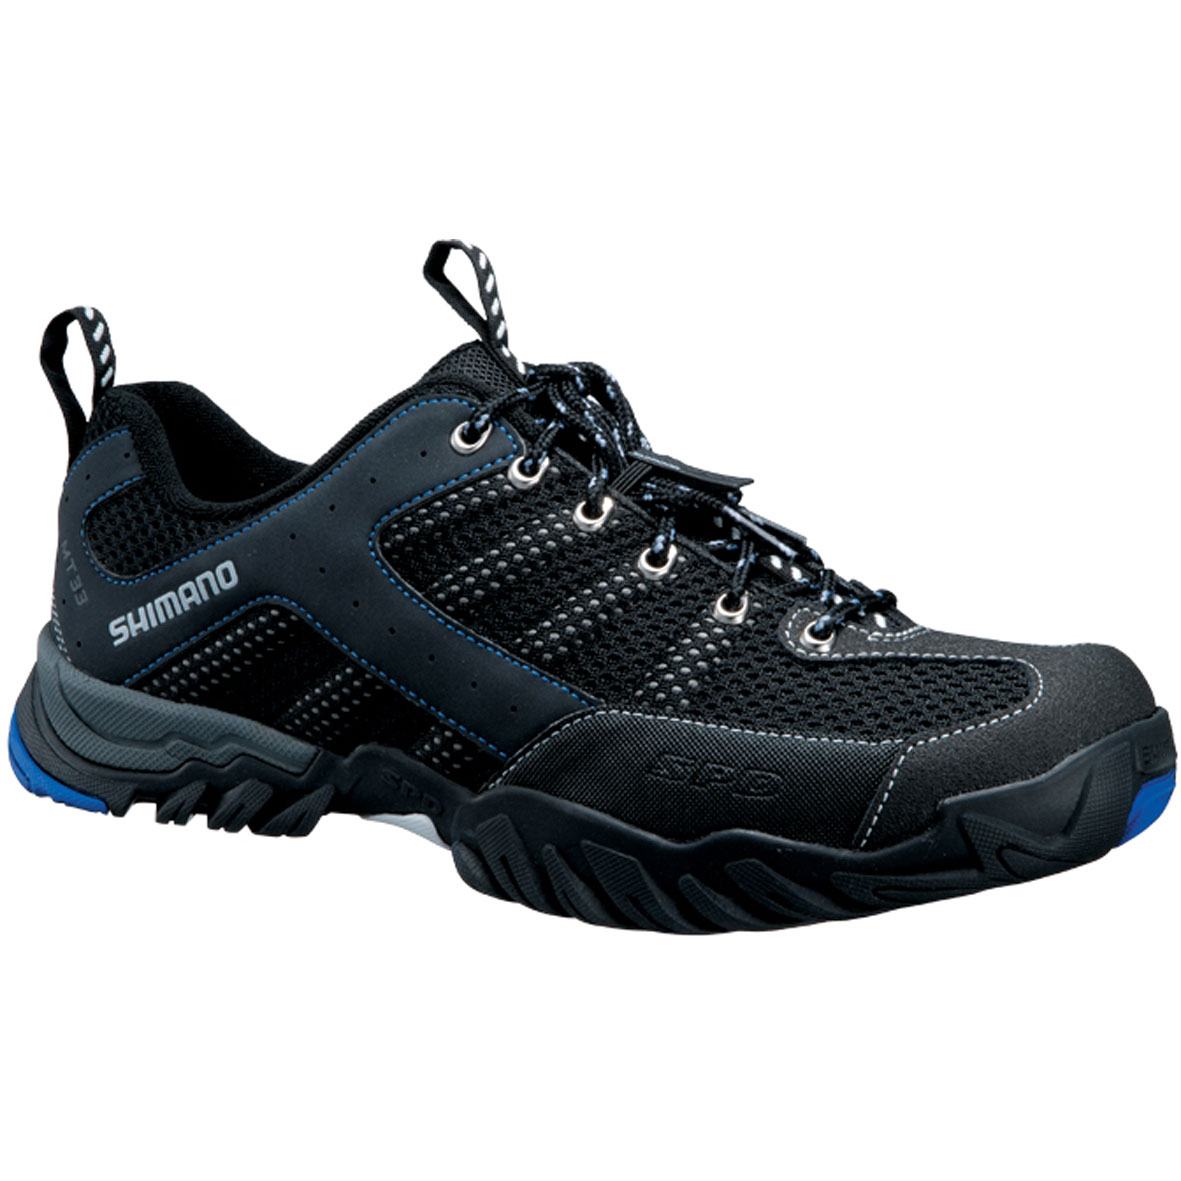 Shimano MT33 SPD Leisure Shoes 2013